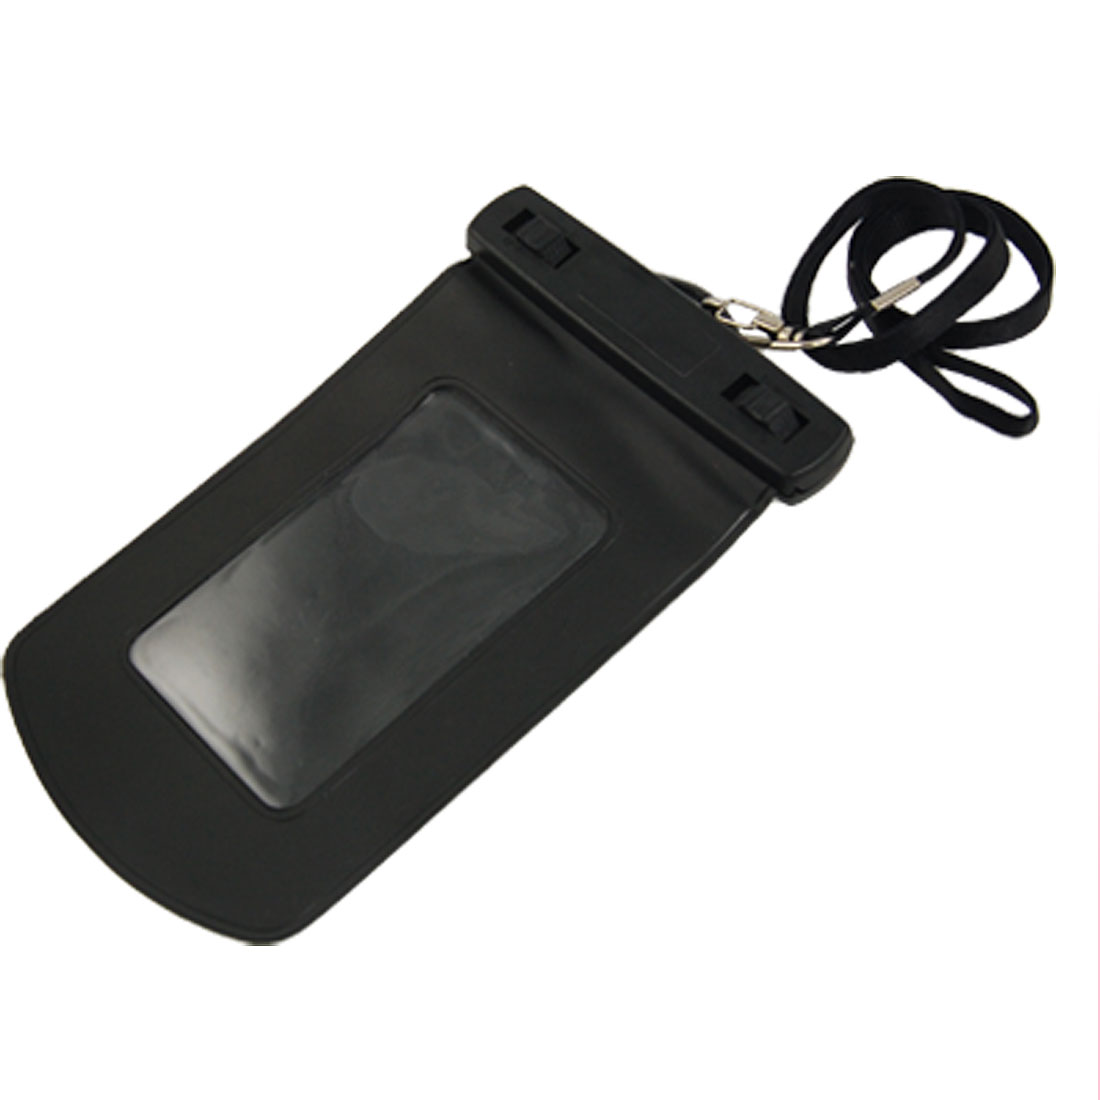 Water Resistant Bag Pouch w Strap Black for Cell Phone